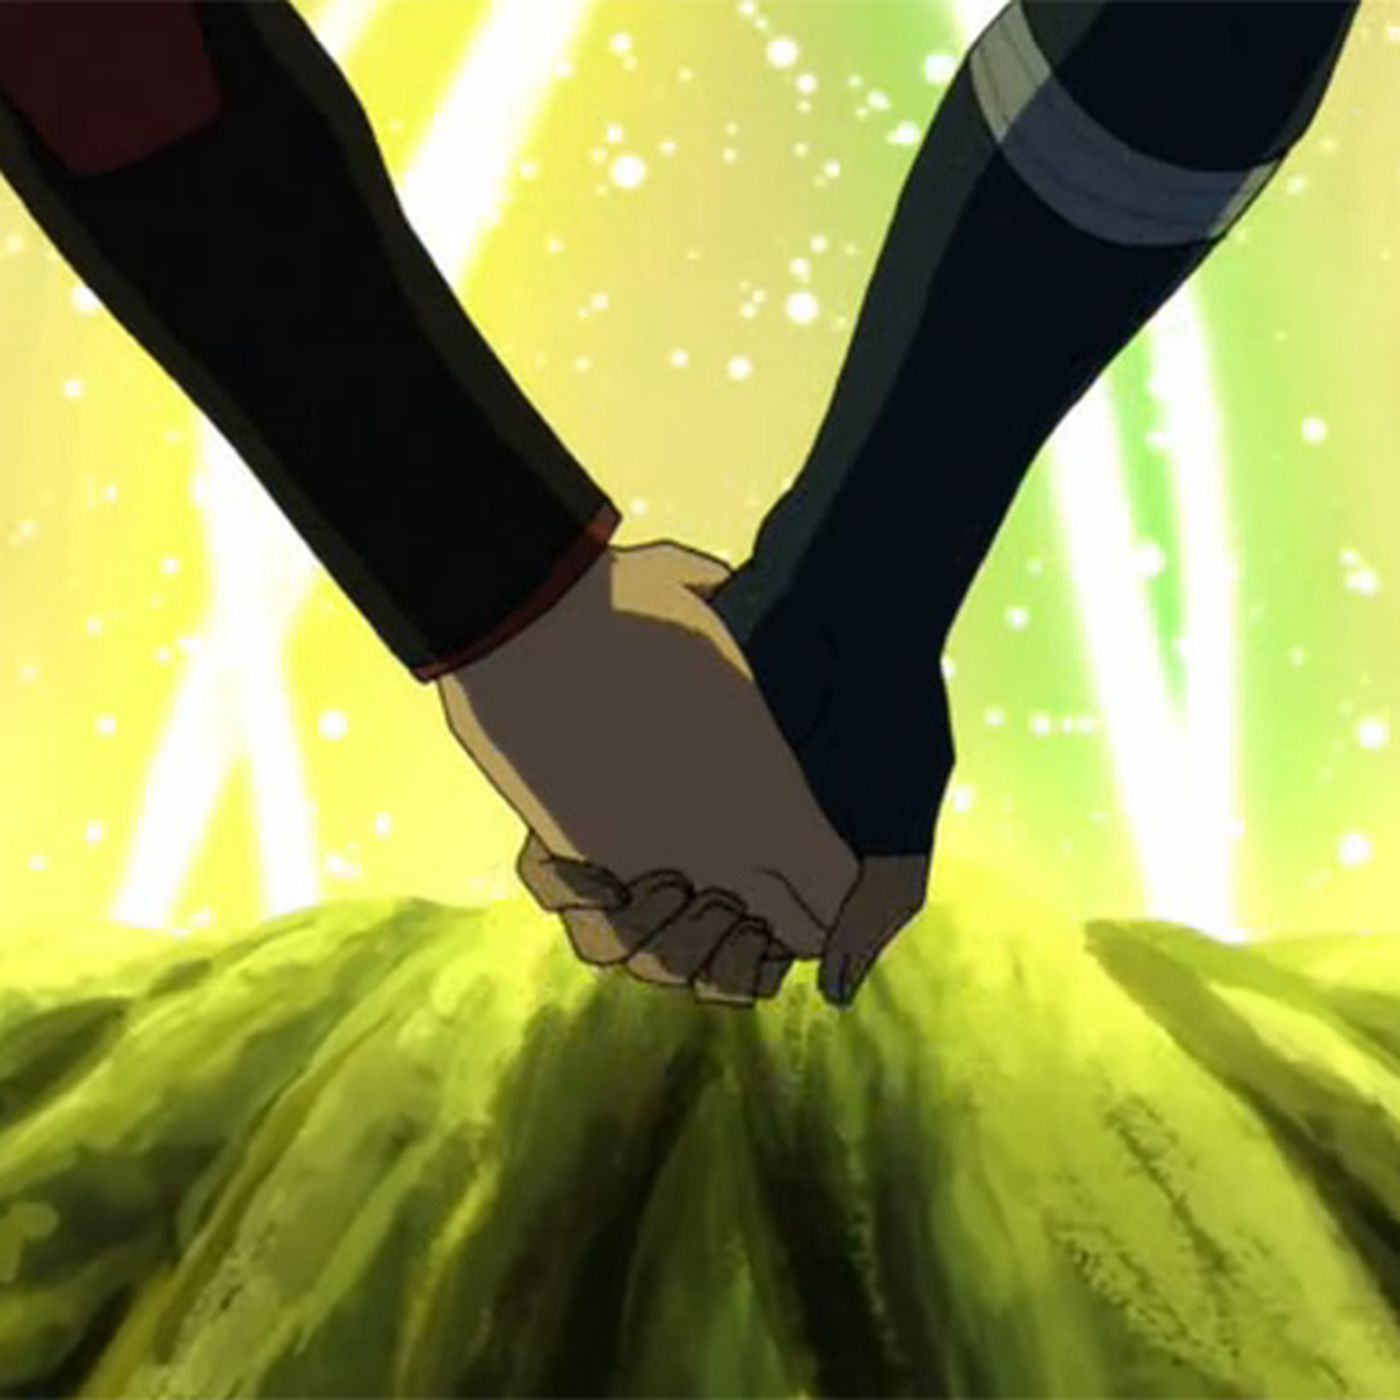 Avatar Gay Sex the legend of korra achieved more in under a minute than